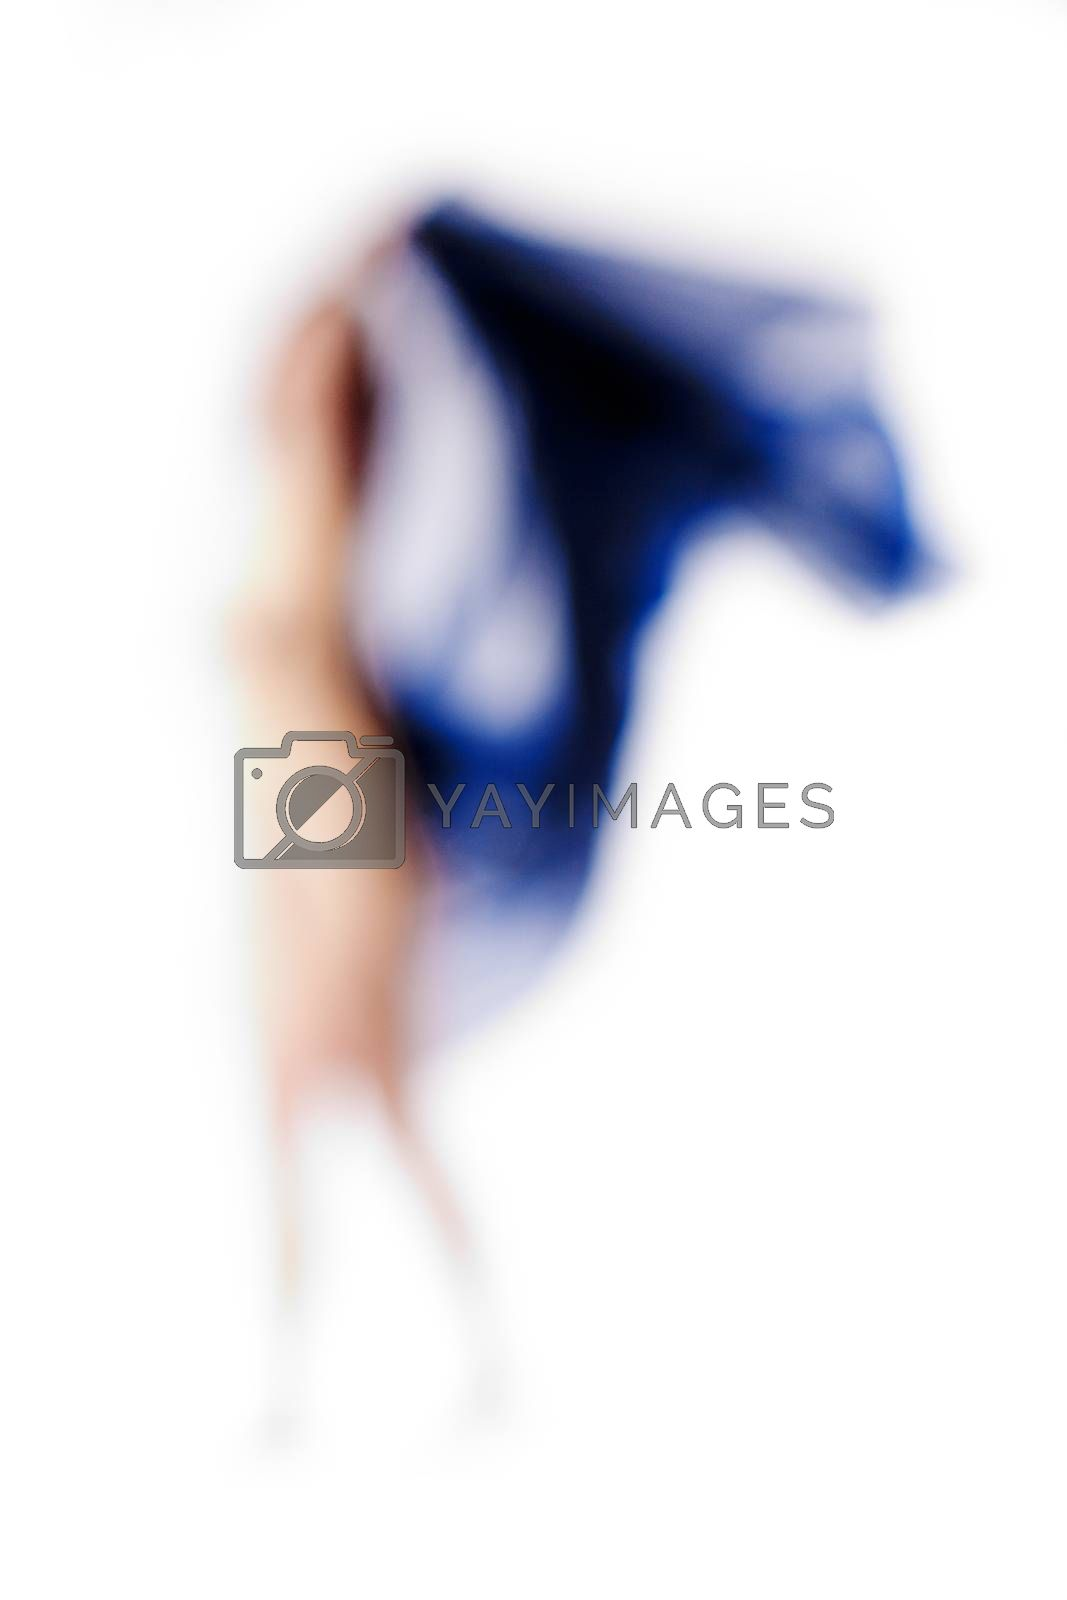 Abstract Out of Focus Image of a Woman with Blue Cloth